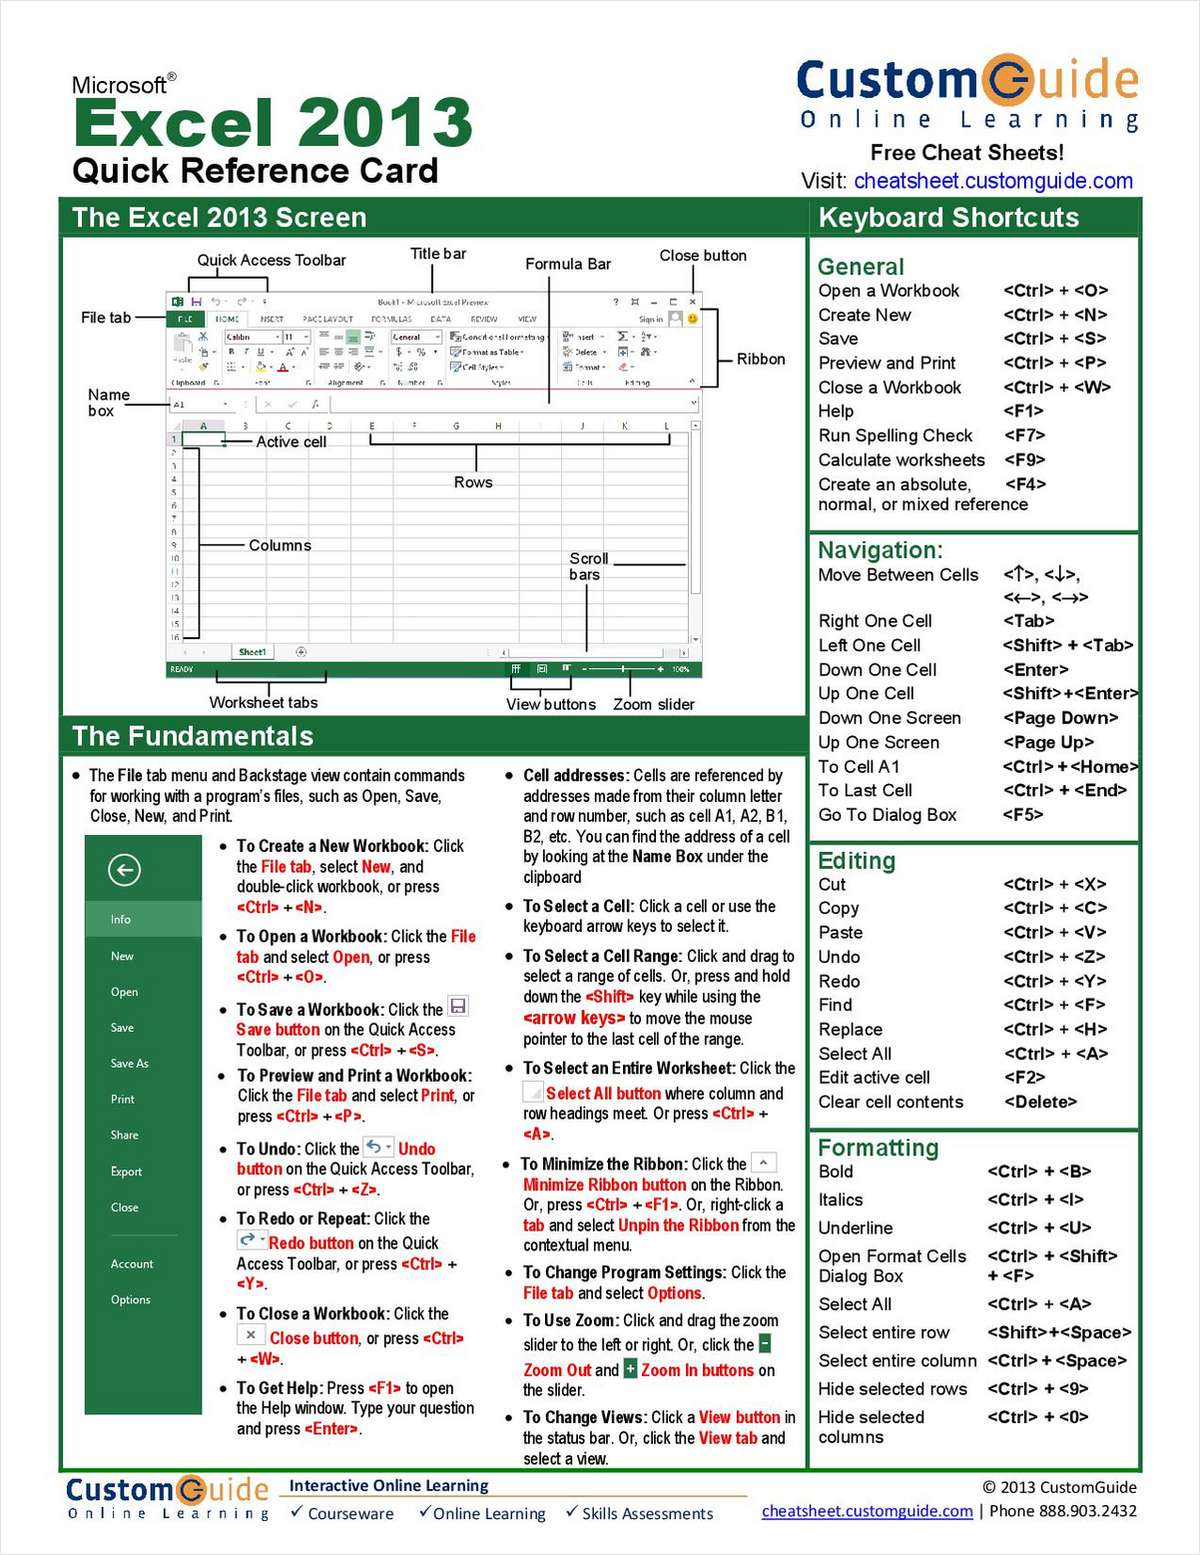 Microsoft Excel Quick Reference Guide Free Tips And